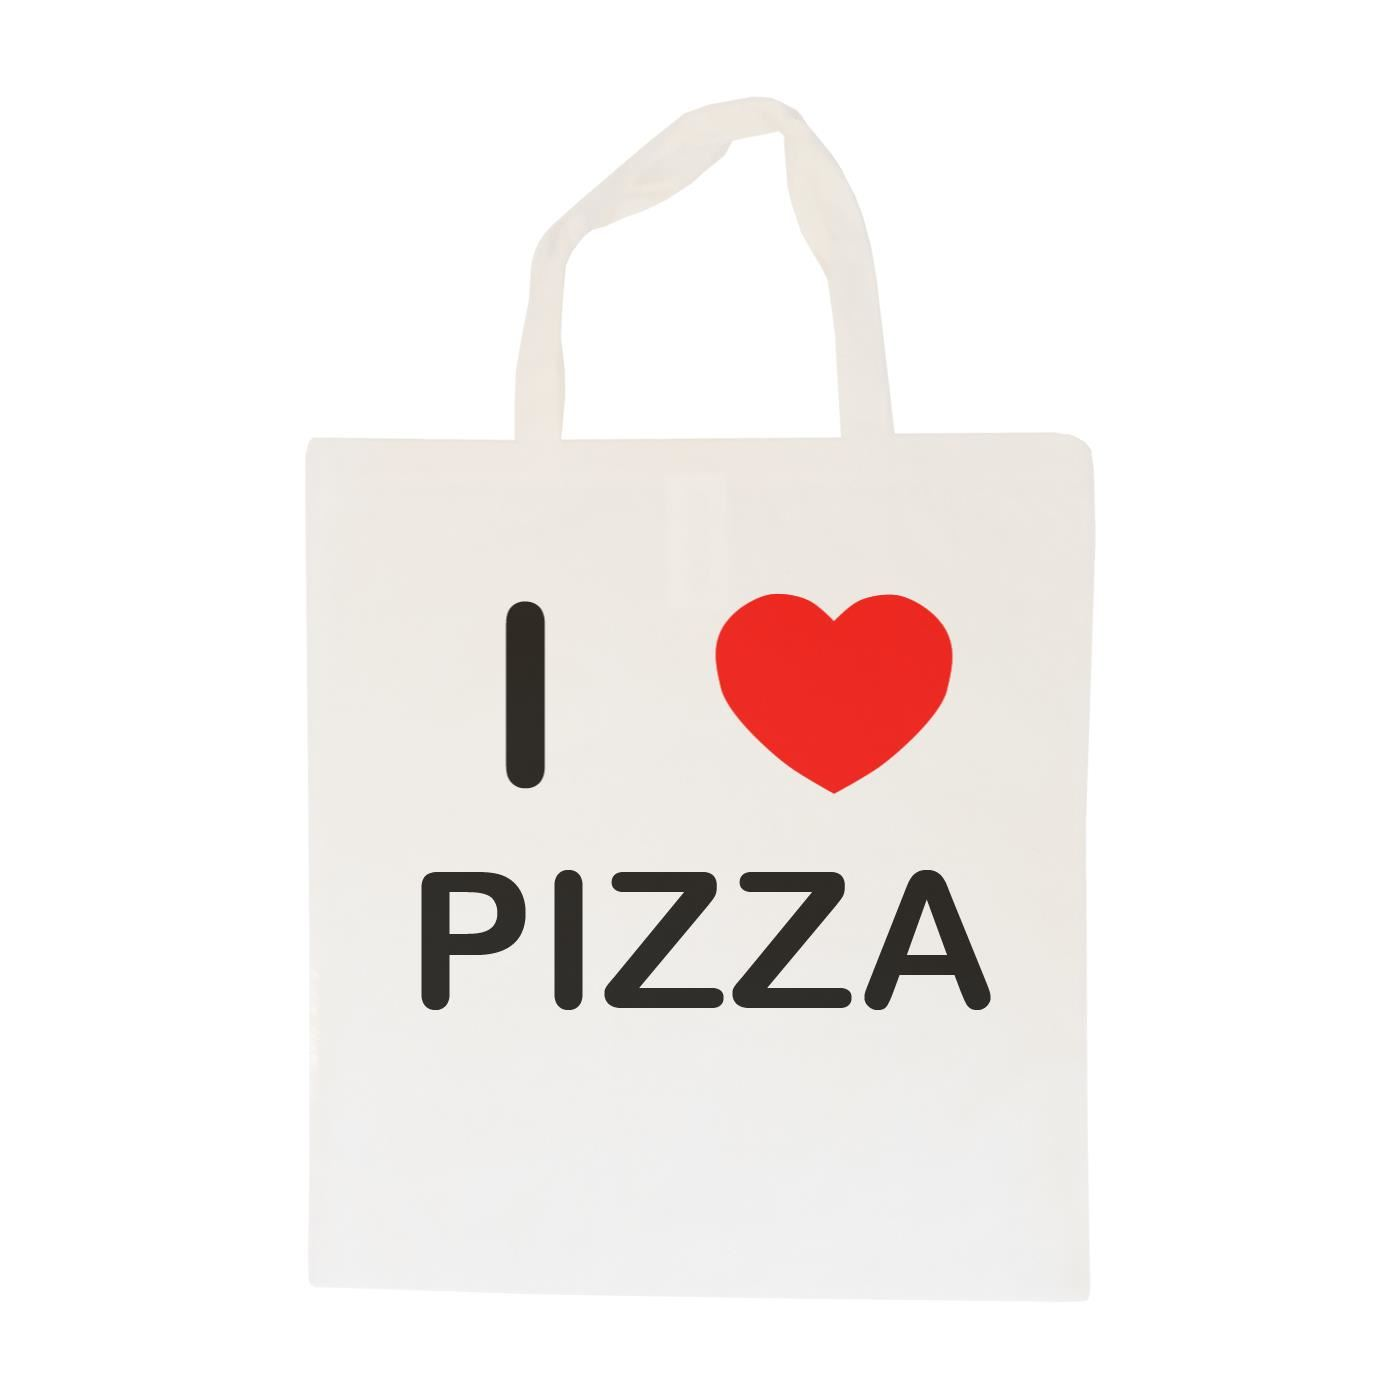 I Love Pizza - Cotton Bag | Size choice Tote, Shopper or Sling